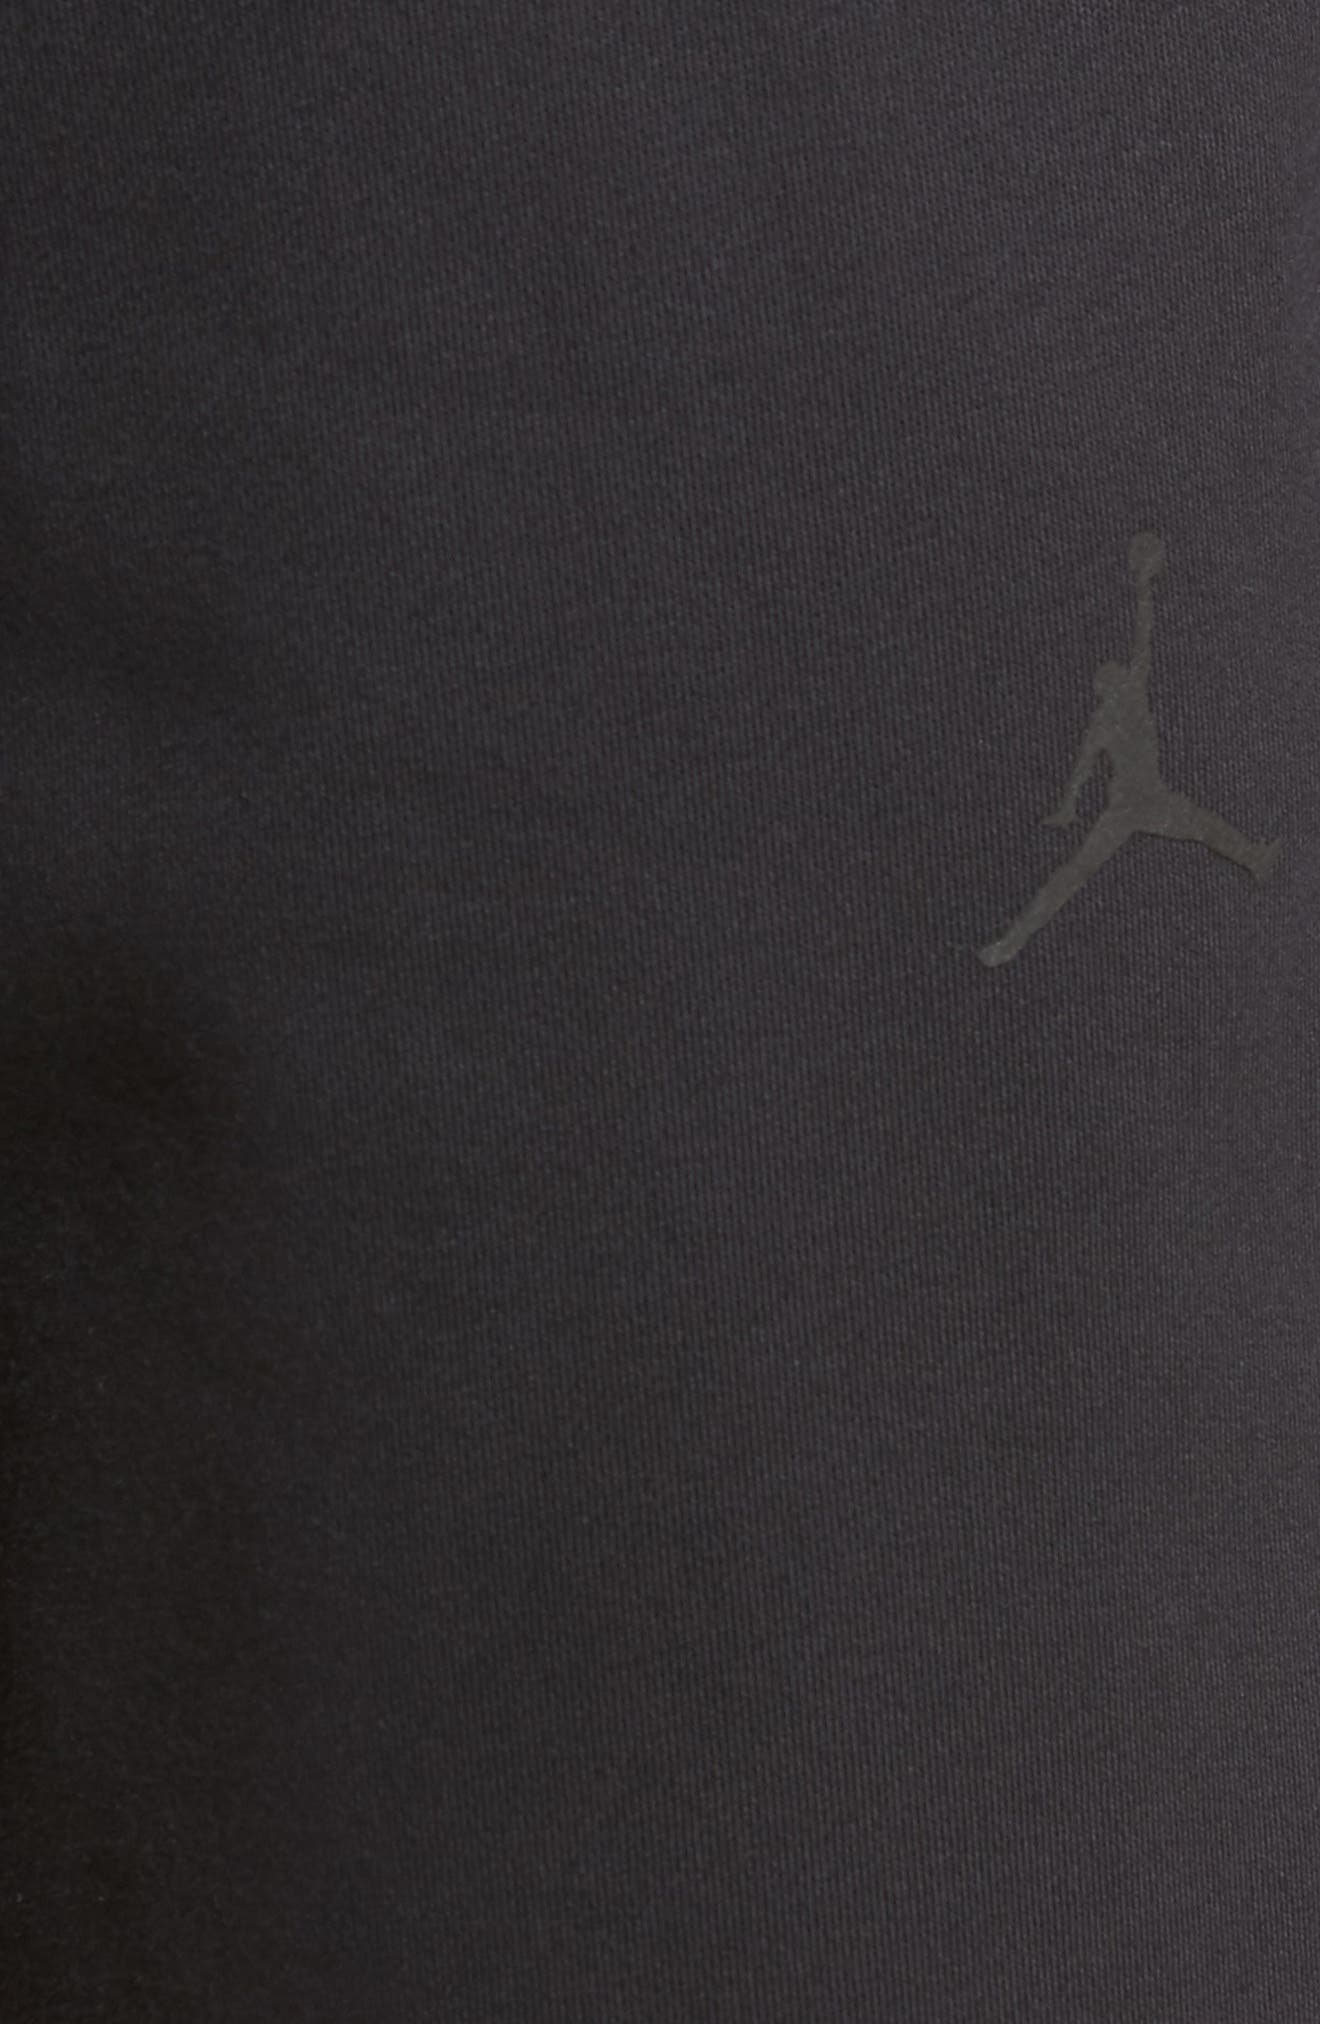 Jordan AJ11 Hybrid Pants,                             Alternate thumbnail 5, color,                             010